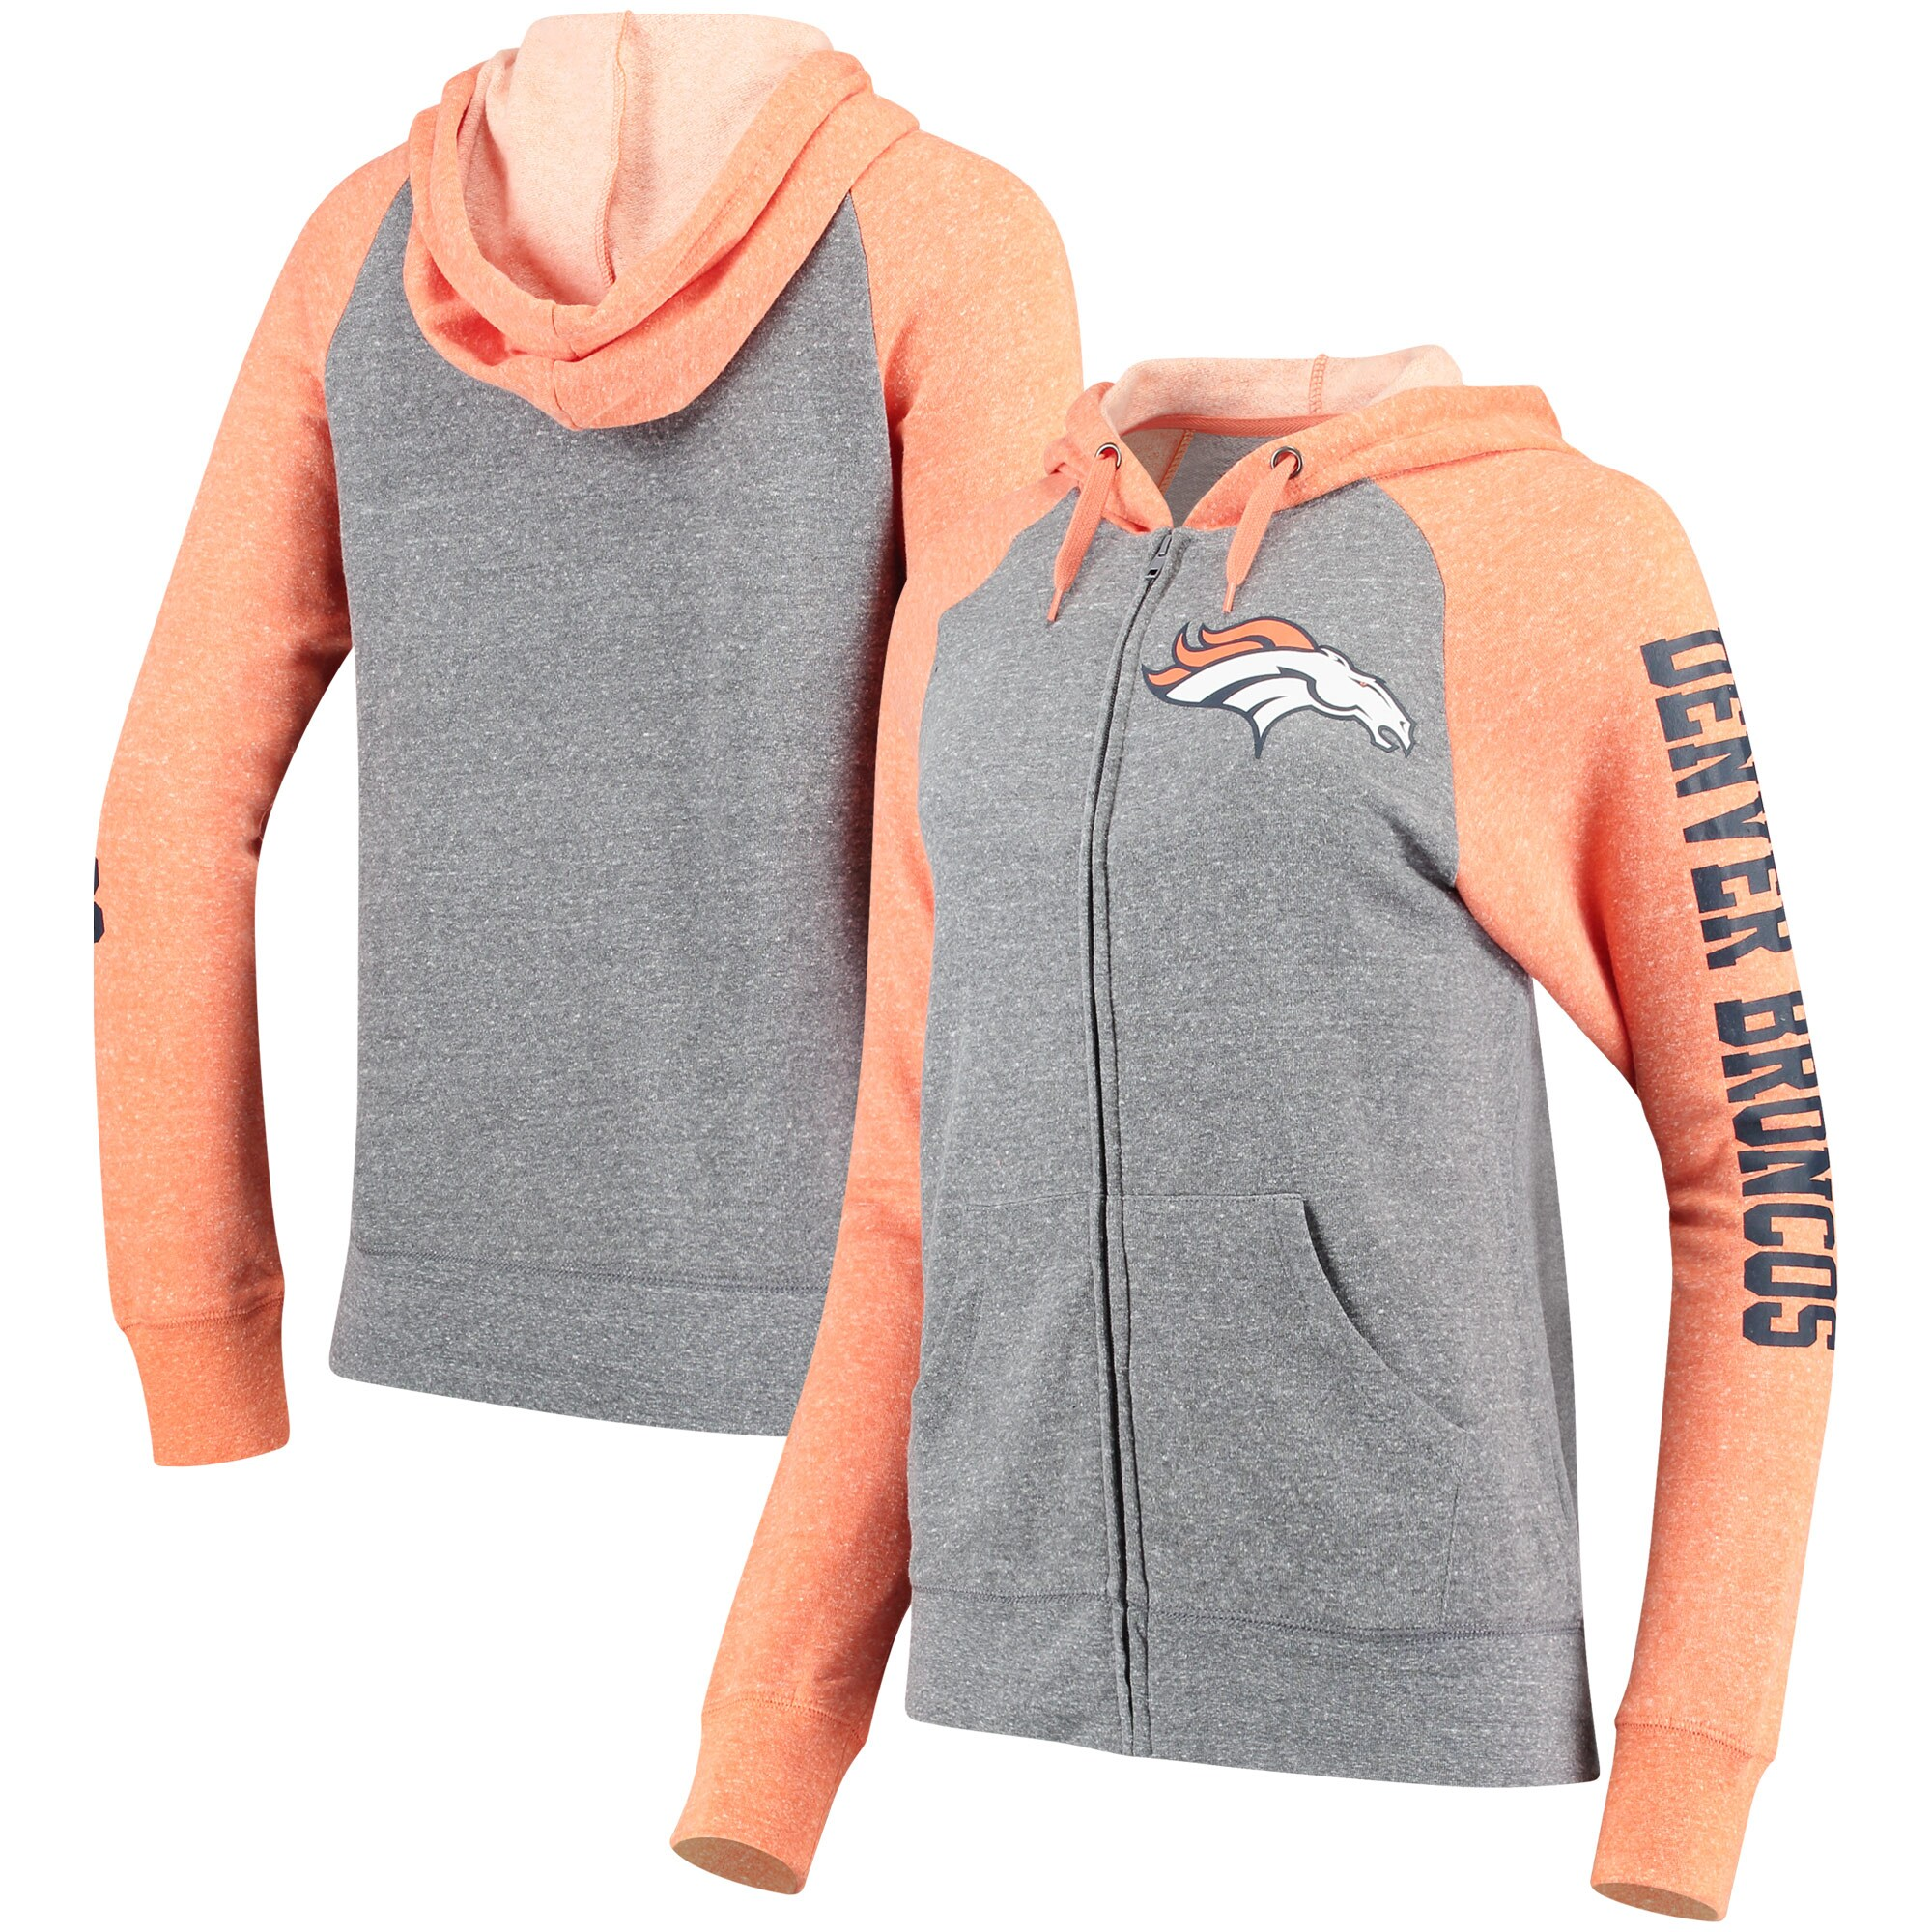 Denver Broncos 5th & Ocean by New Era Women's Fleece Tri-Blend Raglan Sleeve Full-Zip Hoodie - Heathered Gray/Orange